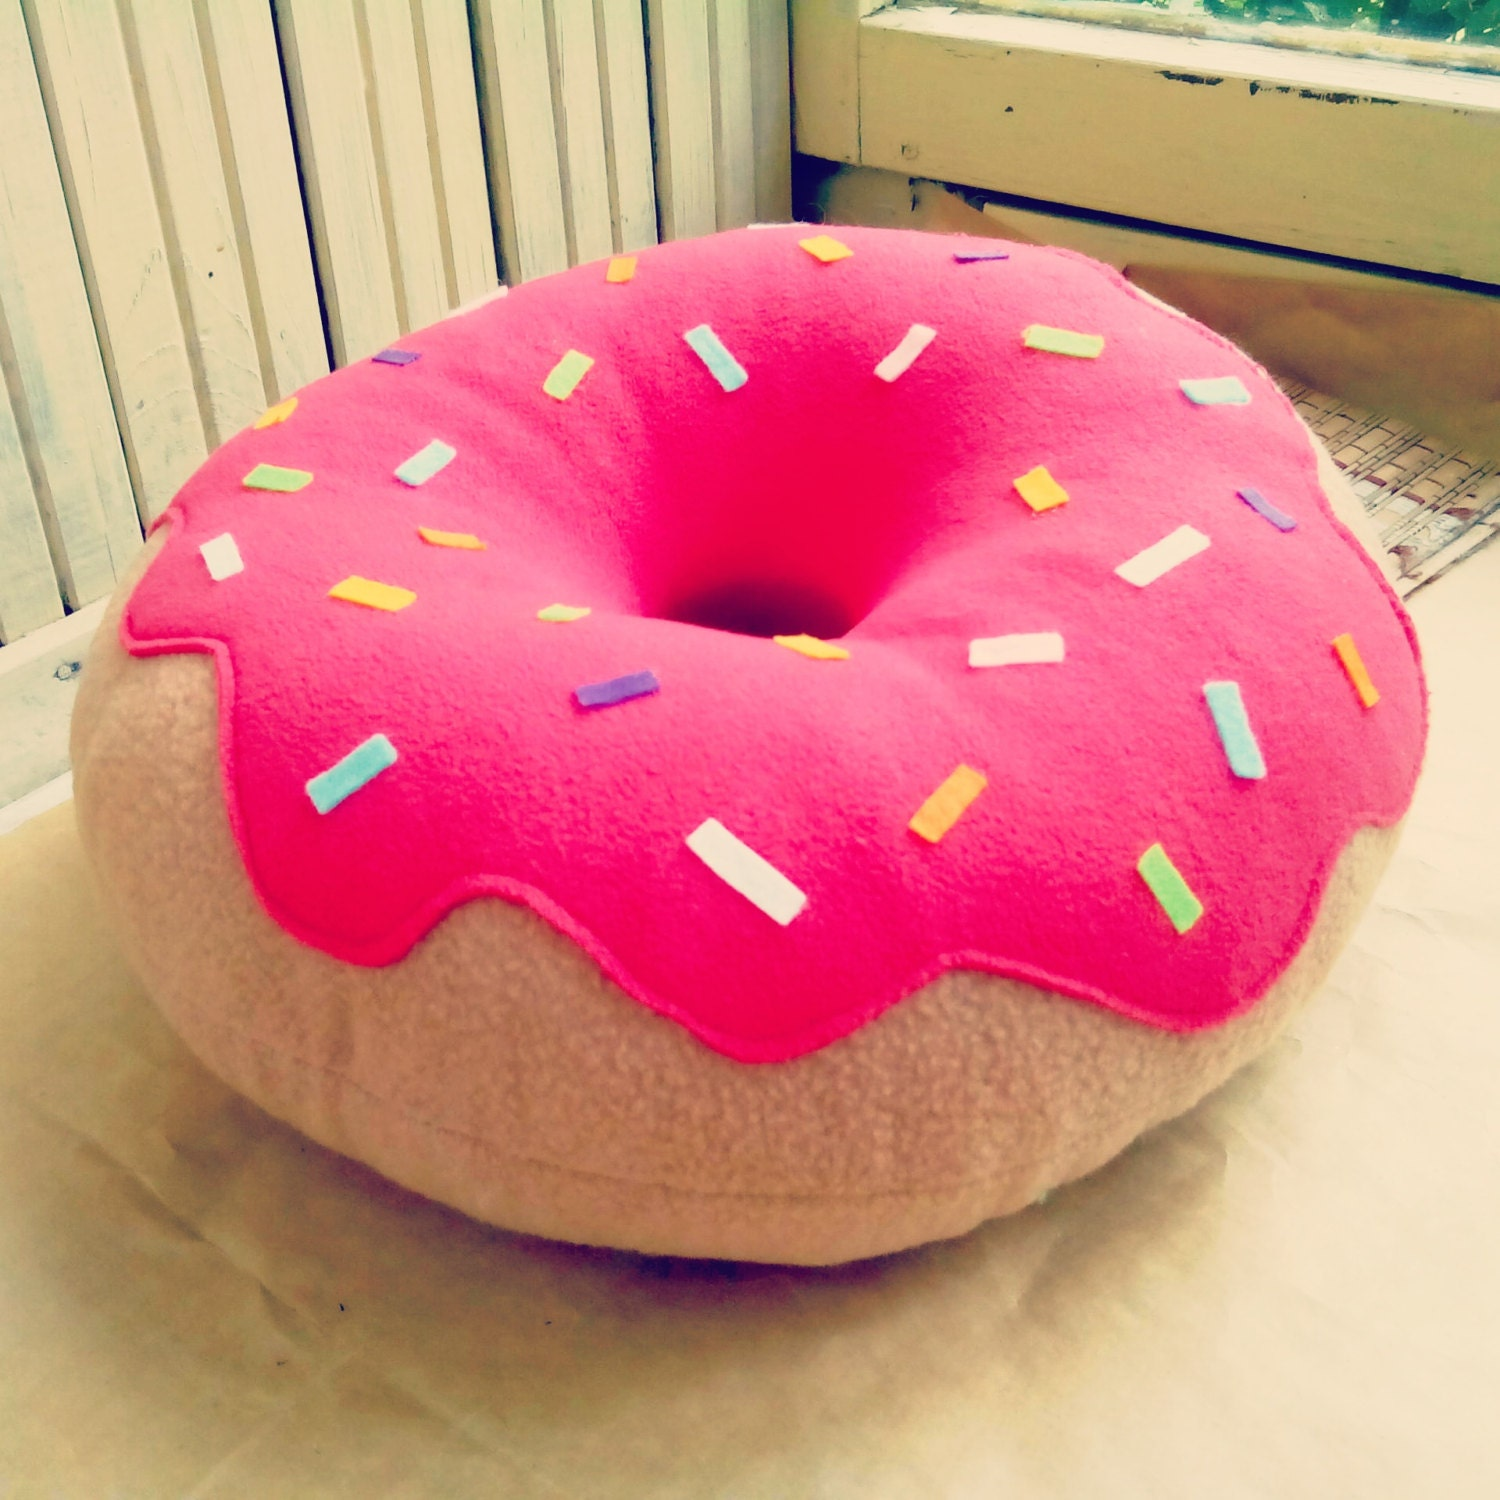 donut pillow designer pillow decorative pillow home. Black Bedroom Furniture Sets. Home Design Ideas